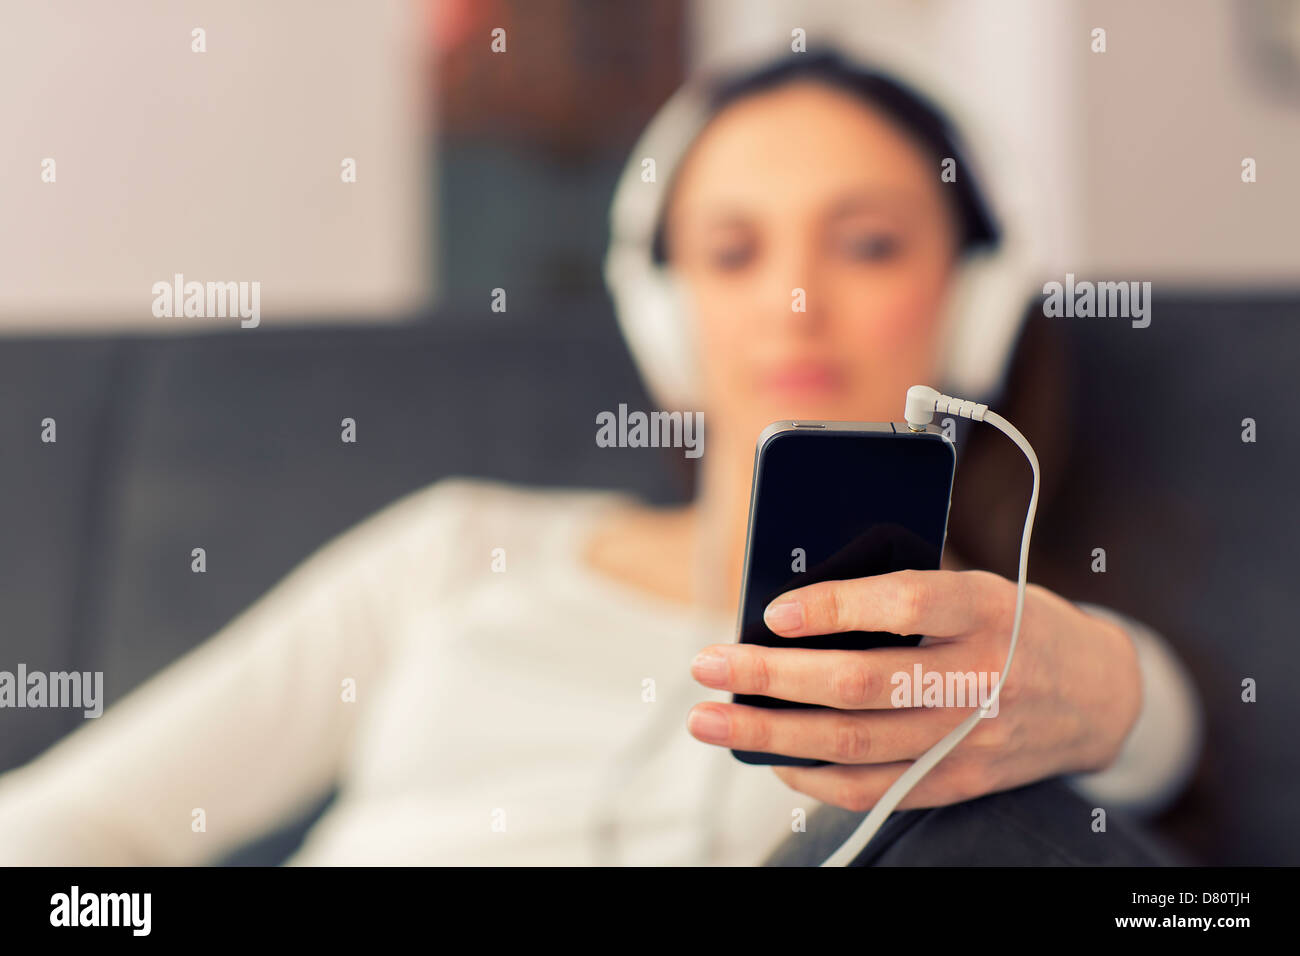 net audio player in the foreground - Stock Image